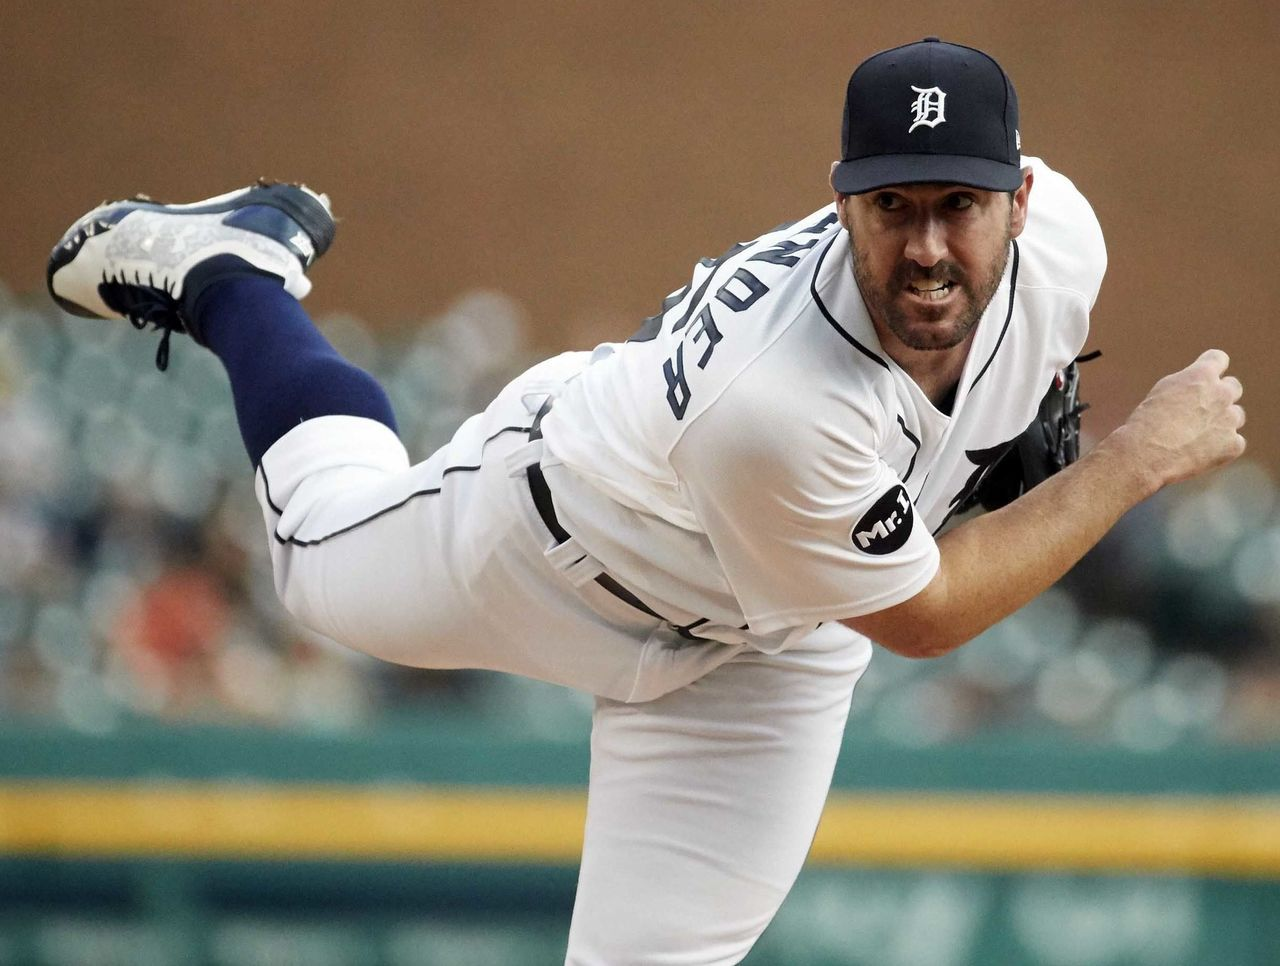 Cropped_2017-06-15t235542z_39582660_nocid_rtrmadp_3_mlb-tampa-bay-rays-at-detroit-tigers